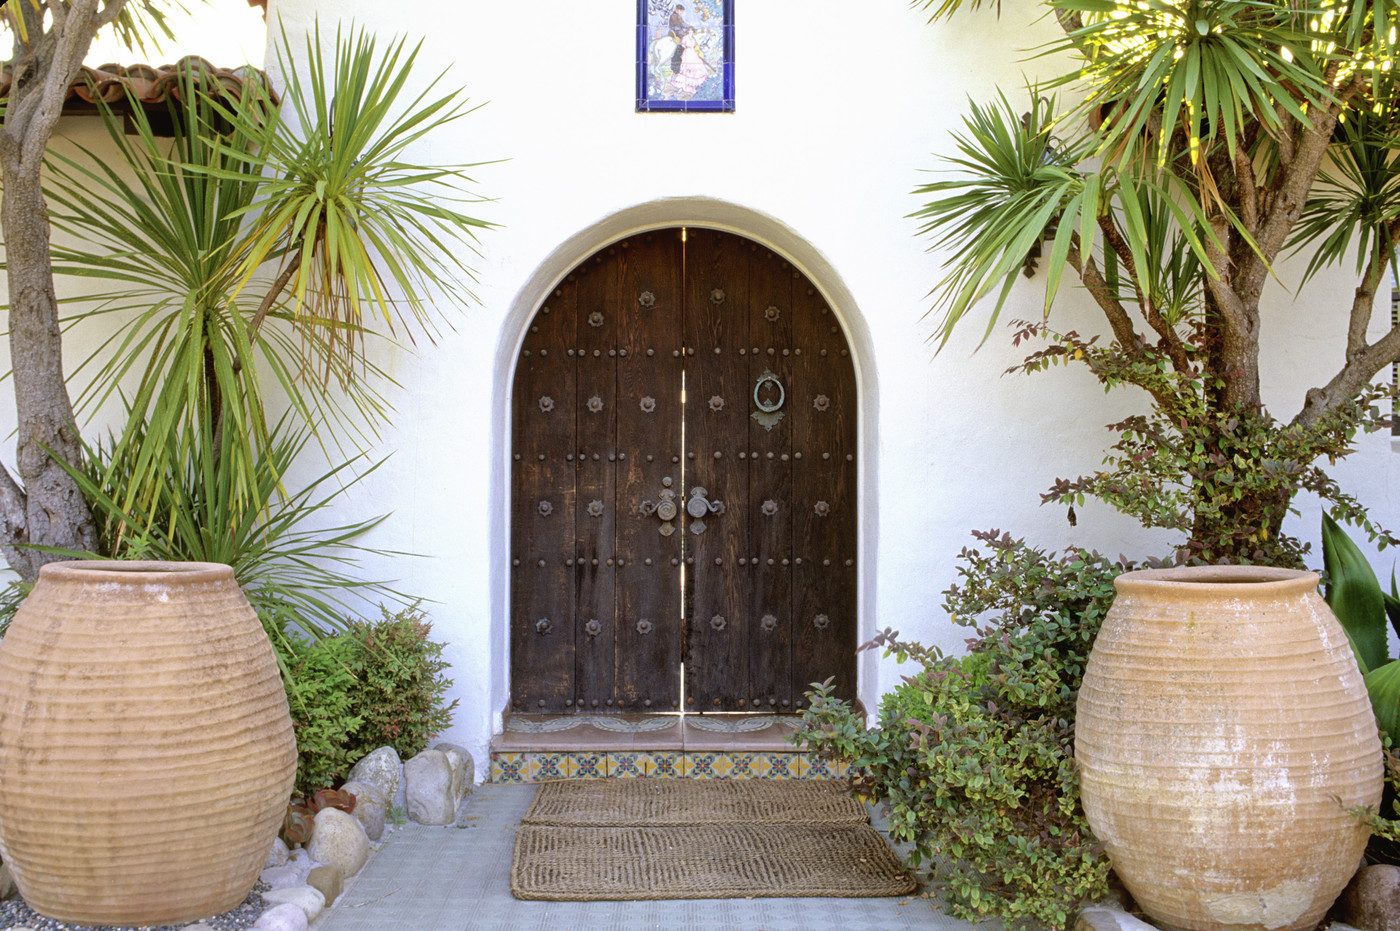 931 #4F5E28 Stick With Your Style 15 Ways To Improve Your Curb Appeal Lonny image Mediterranean Style Entry Doors 39631400